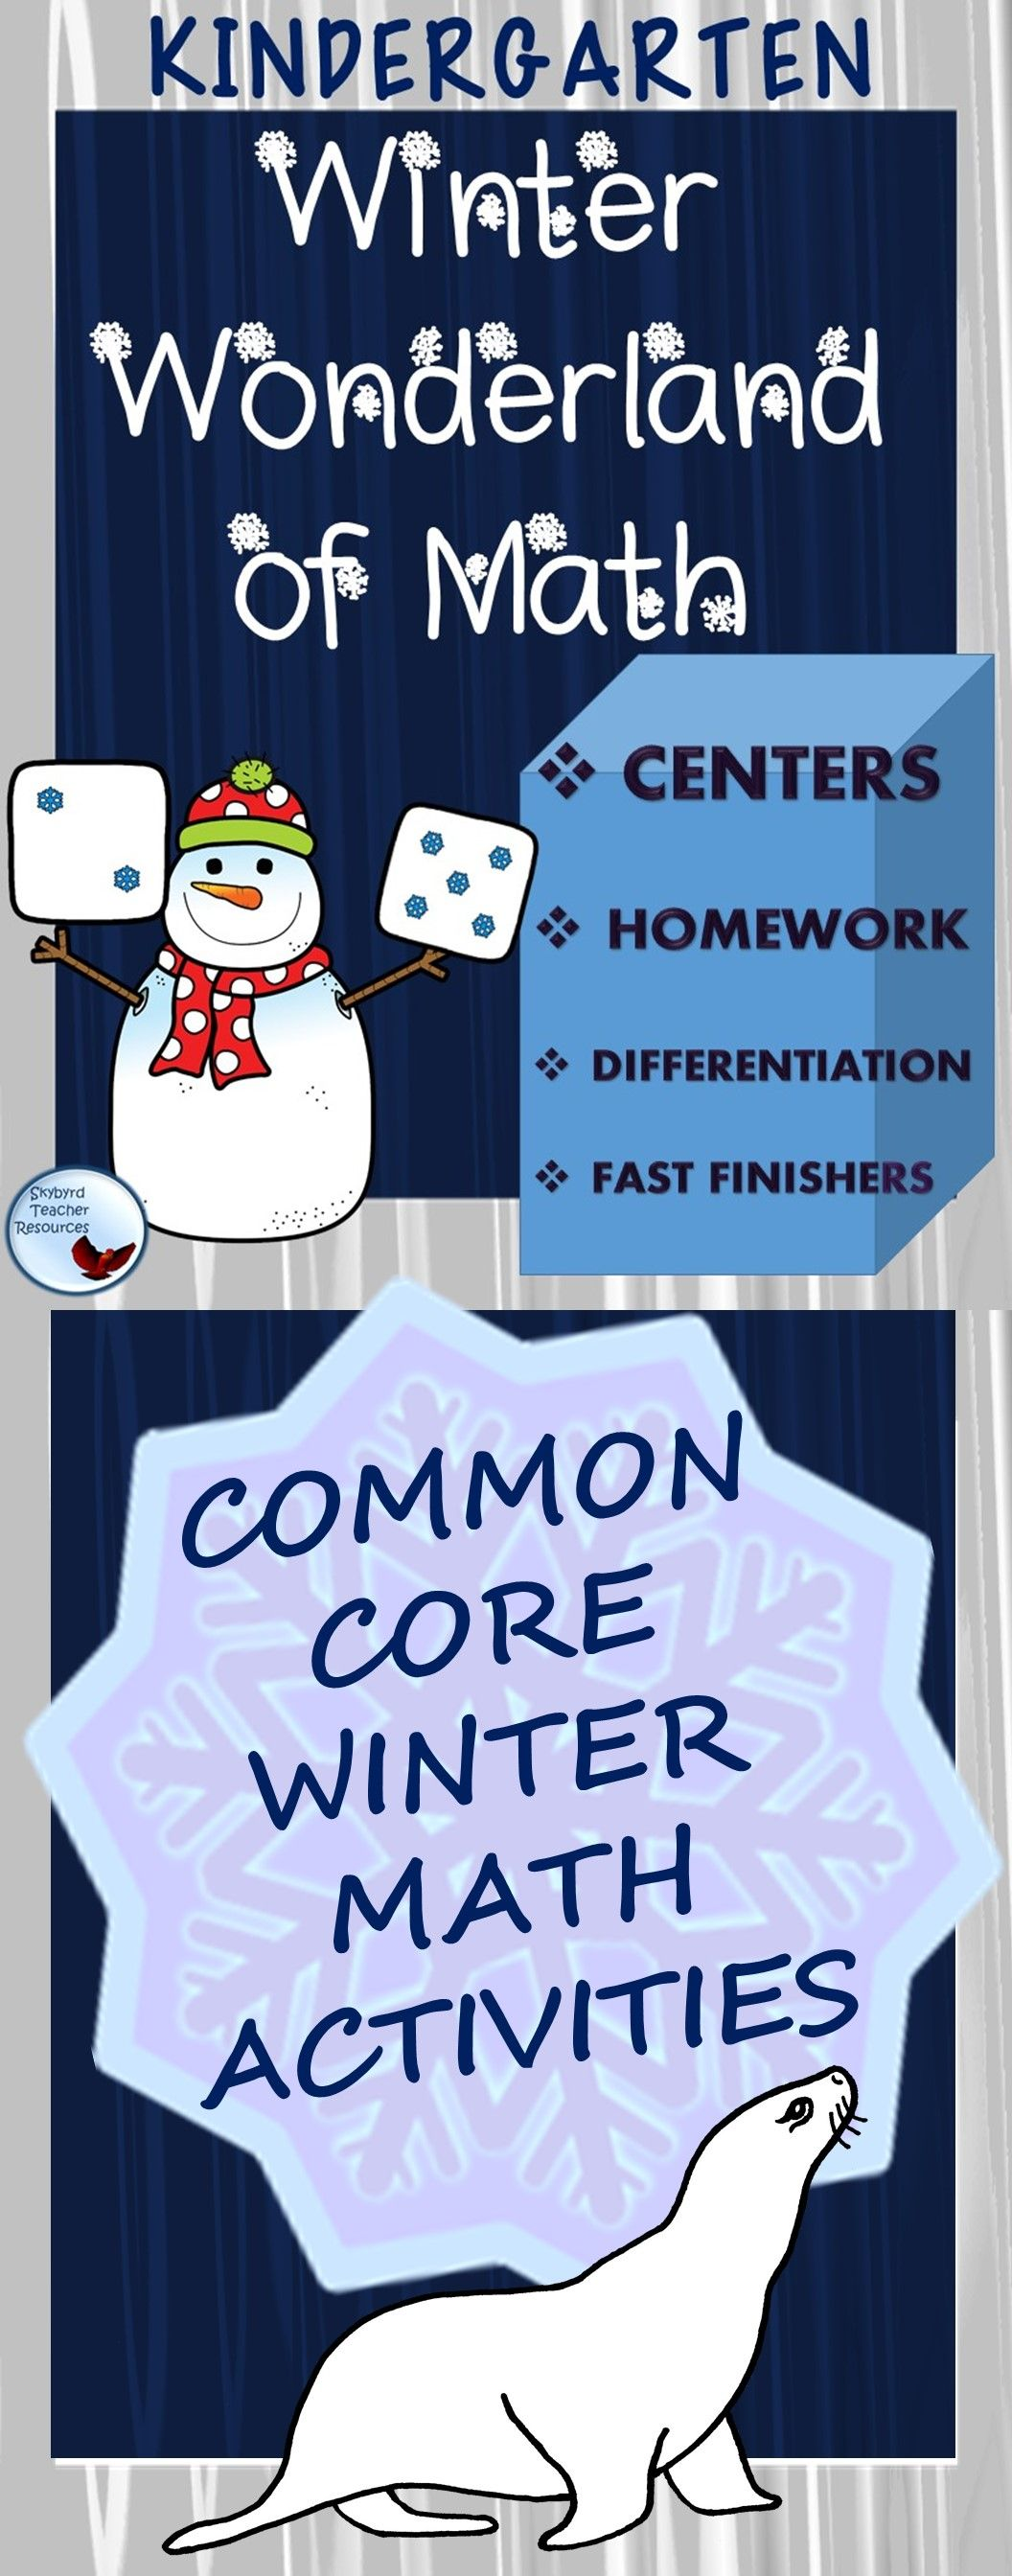 Common Core Kindergarten Winter Math Activities | Classroom ...